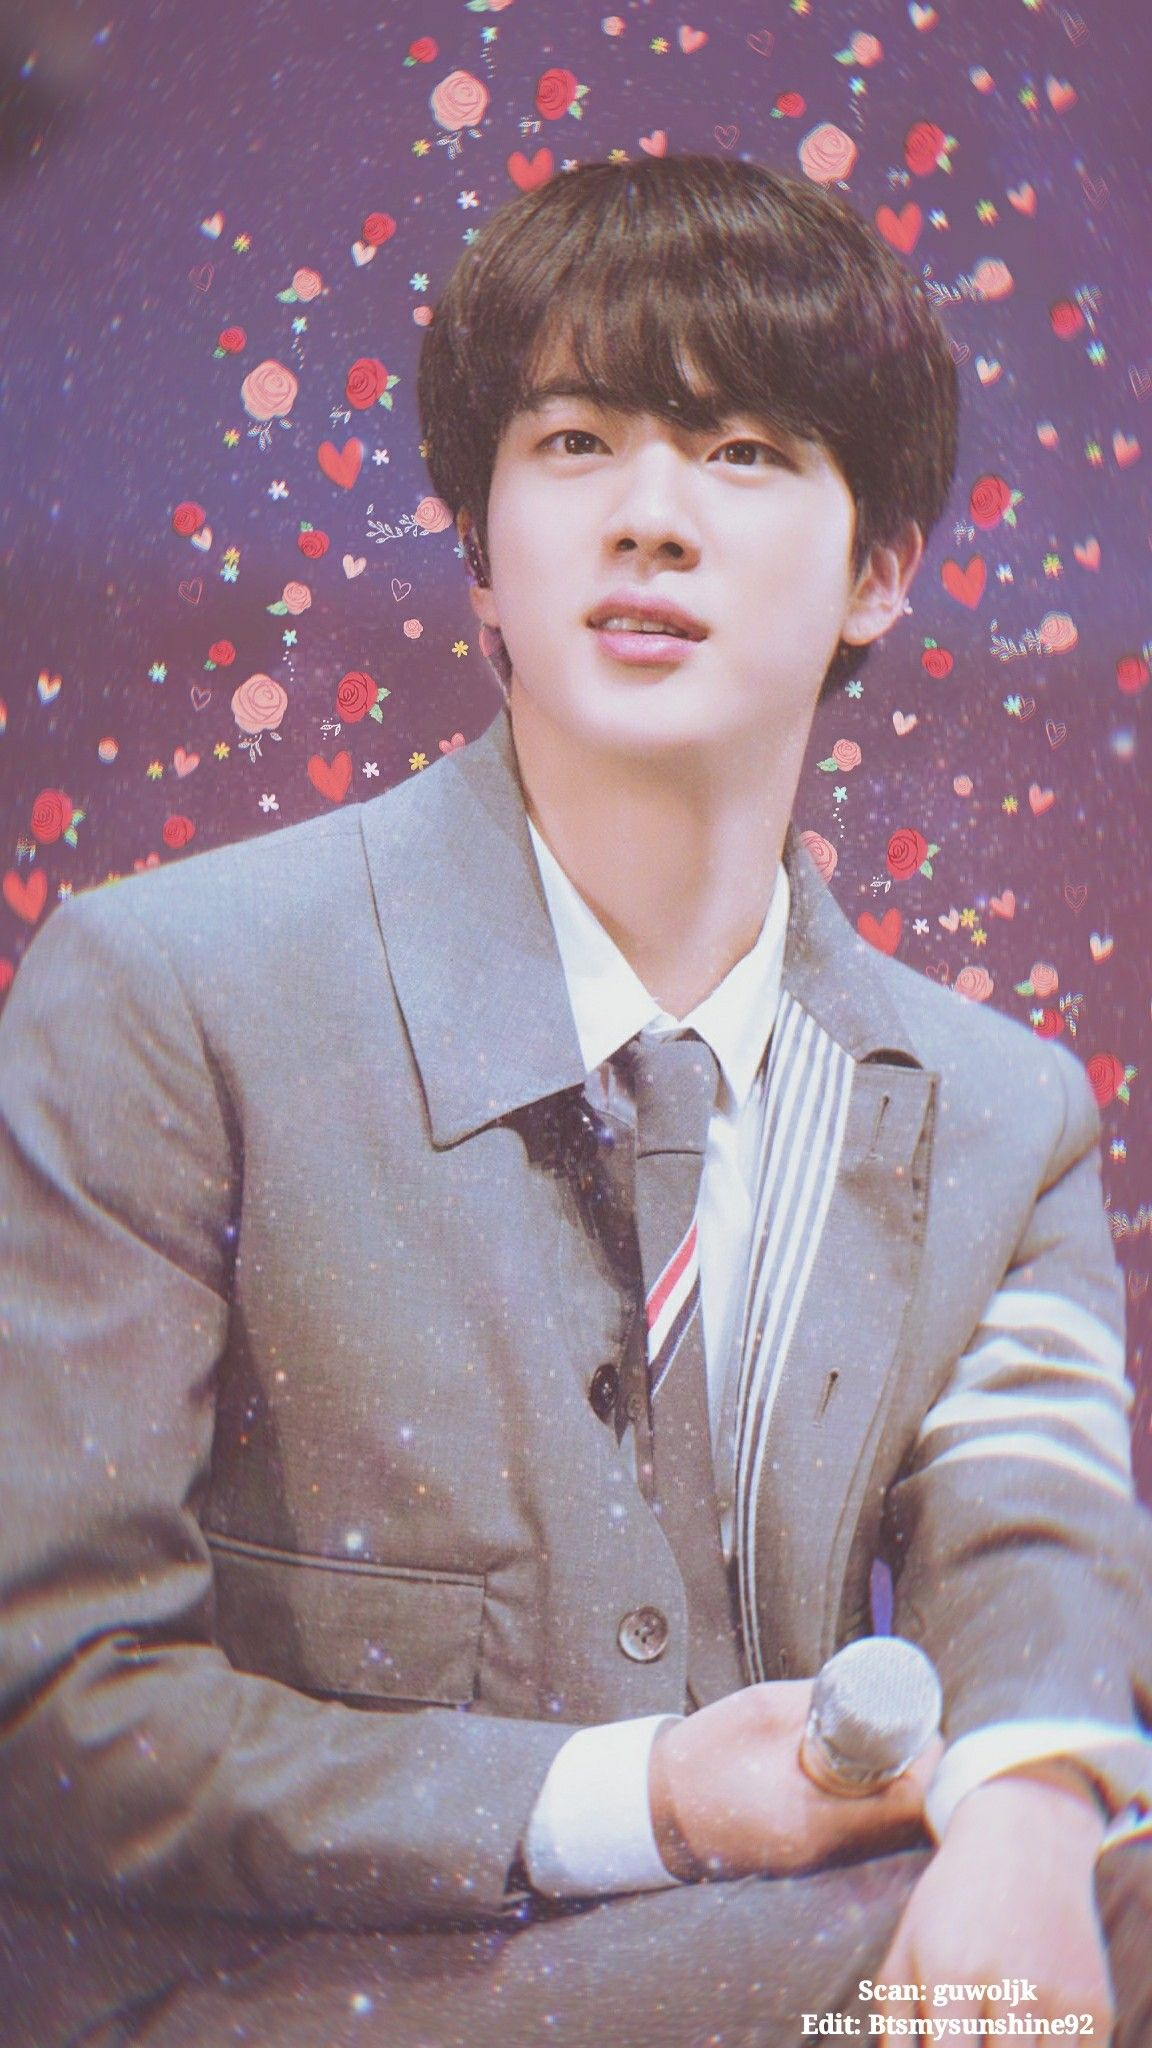 Jin Bts 4th Muster Happy Ever After My Edit Jin Cantores Meninos Bts